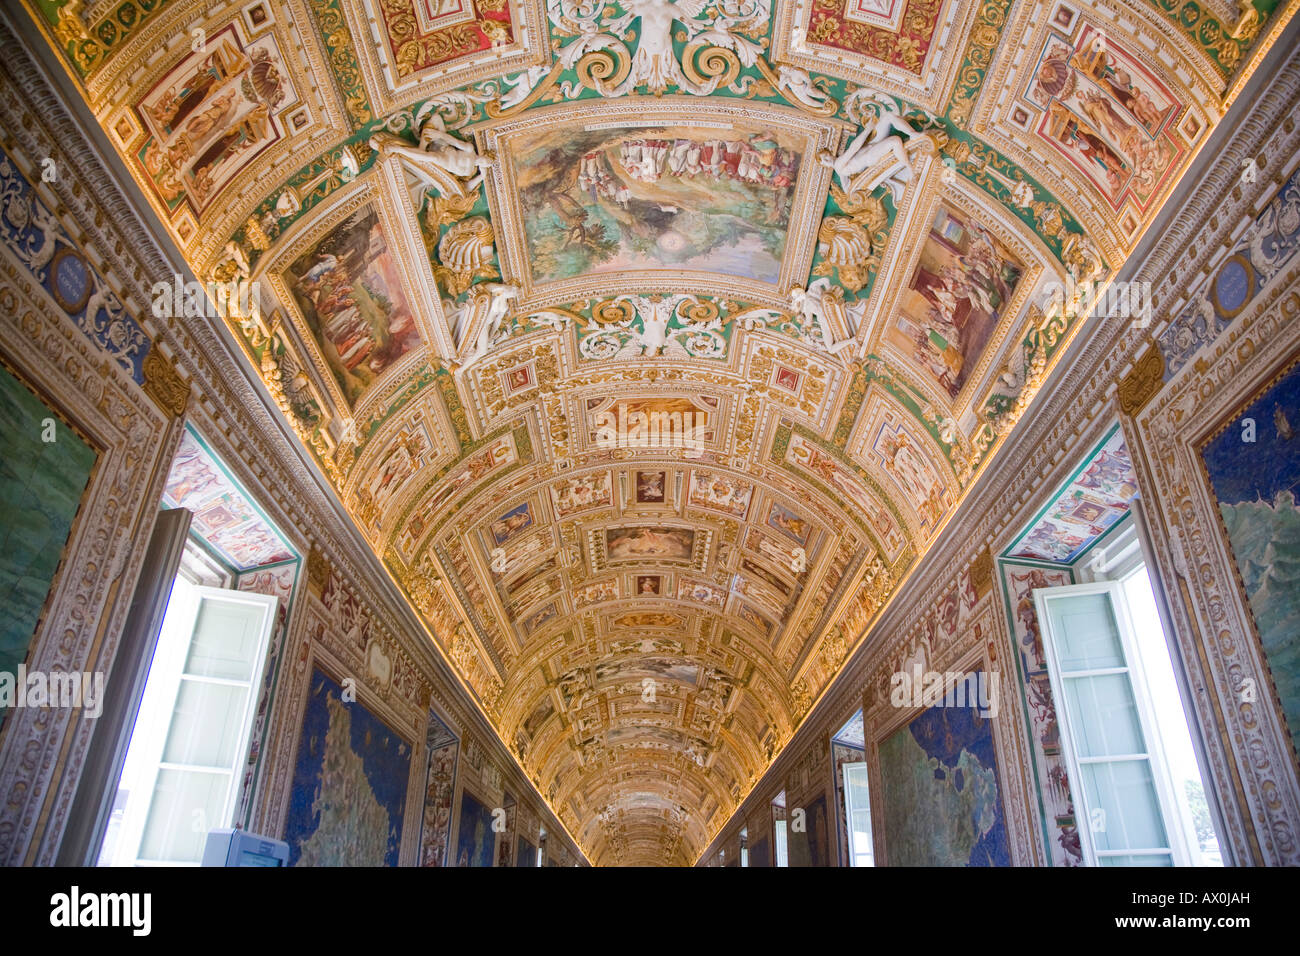 Gallery of the Maps, Musei Vaticani, Rome, Italy - Stock Image